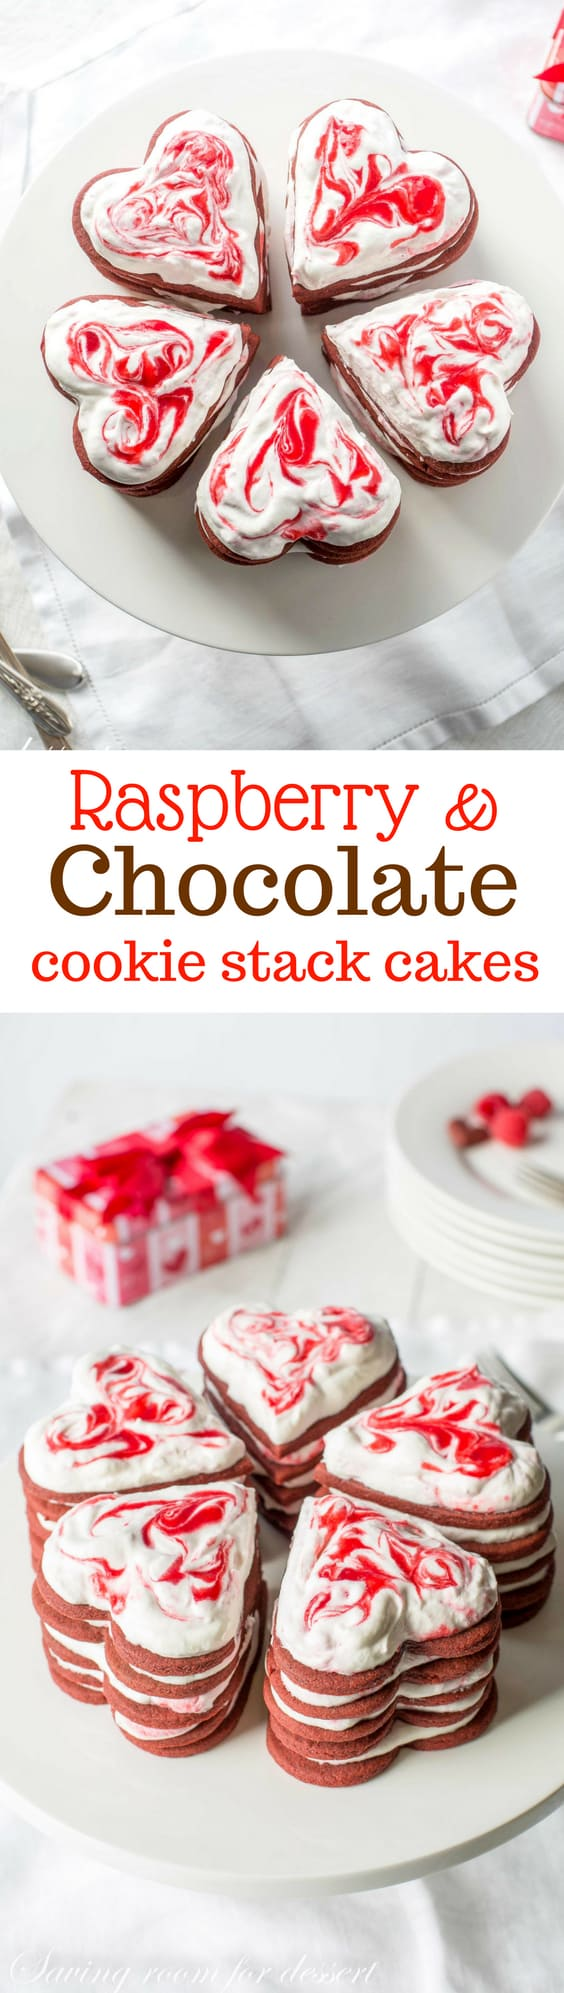 "Raspberry & Chocolate Cookie Stack Cakes ~ Chocolate cut-out cookies are layered between dollops of sweetened whipped cream swirled with raspberry puree then refrigerated for 24 hours. The cookies become soft and ""cake-like"" and taste amazing! www.savingdessert.com"